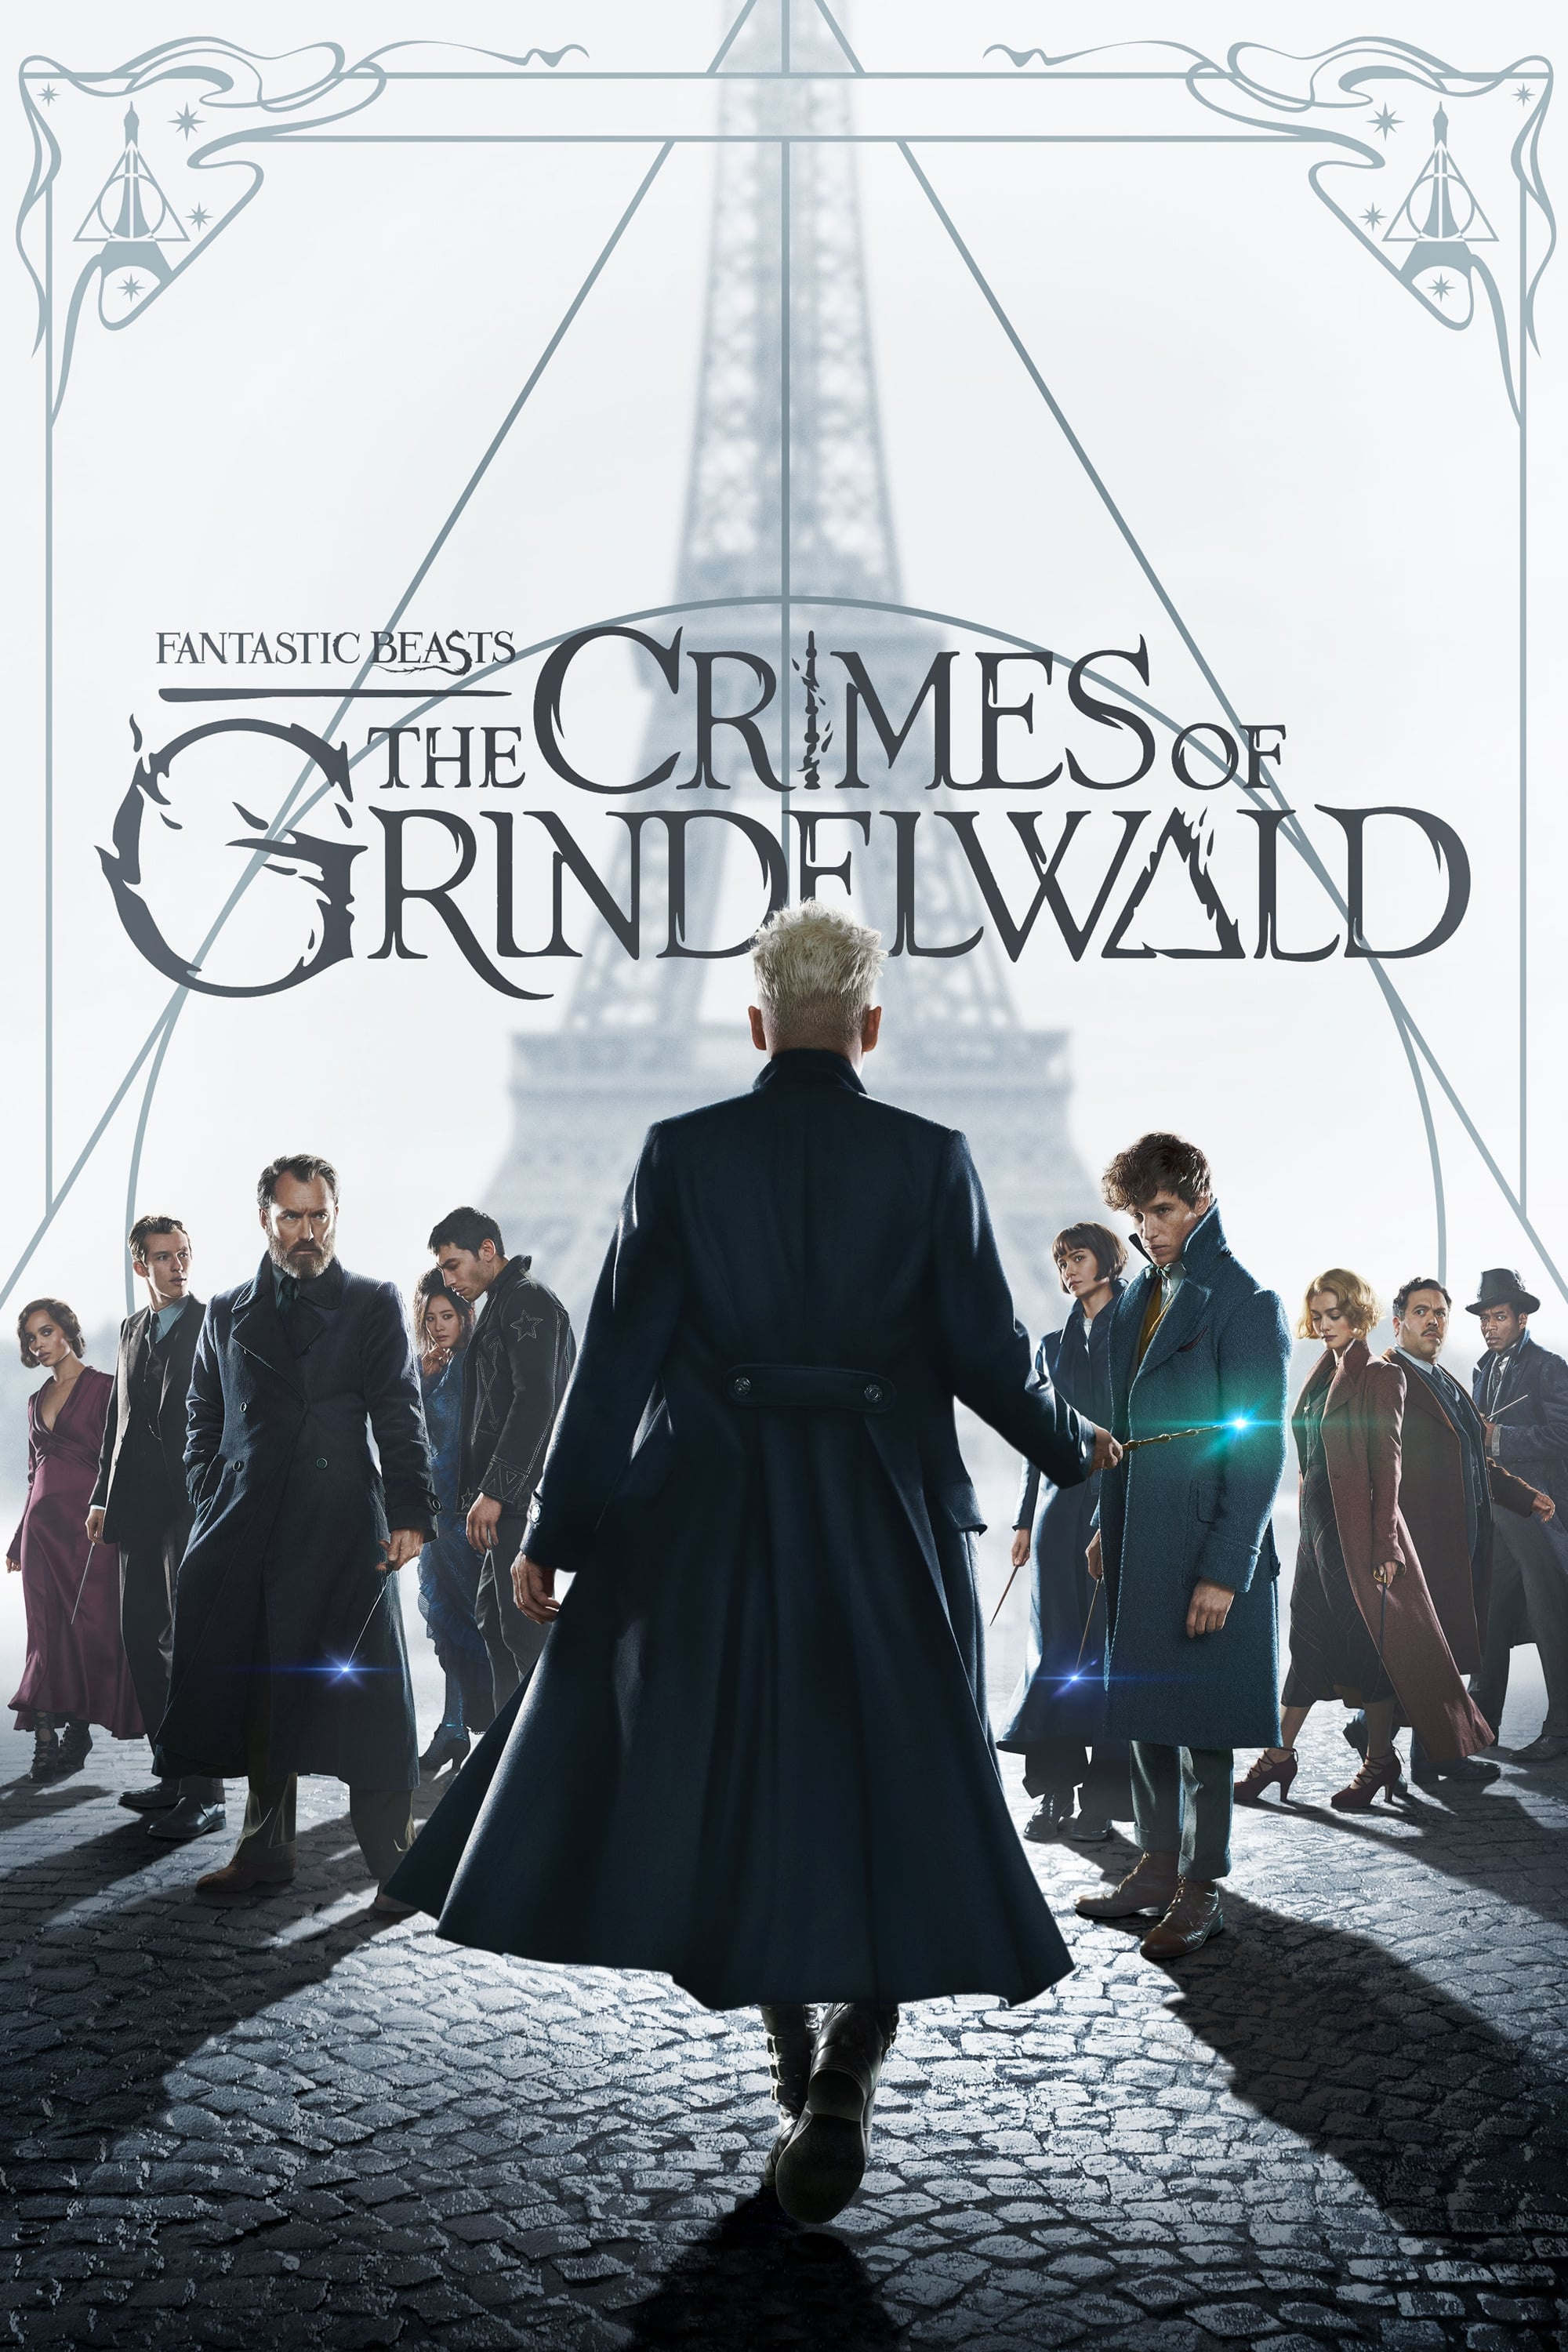 image for Fantastic Beasts: The Crimes of Grindelwald